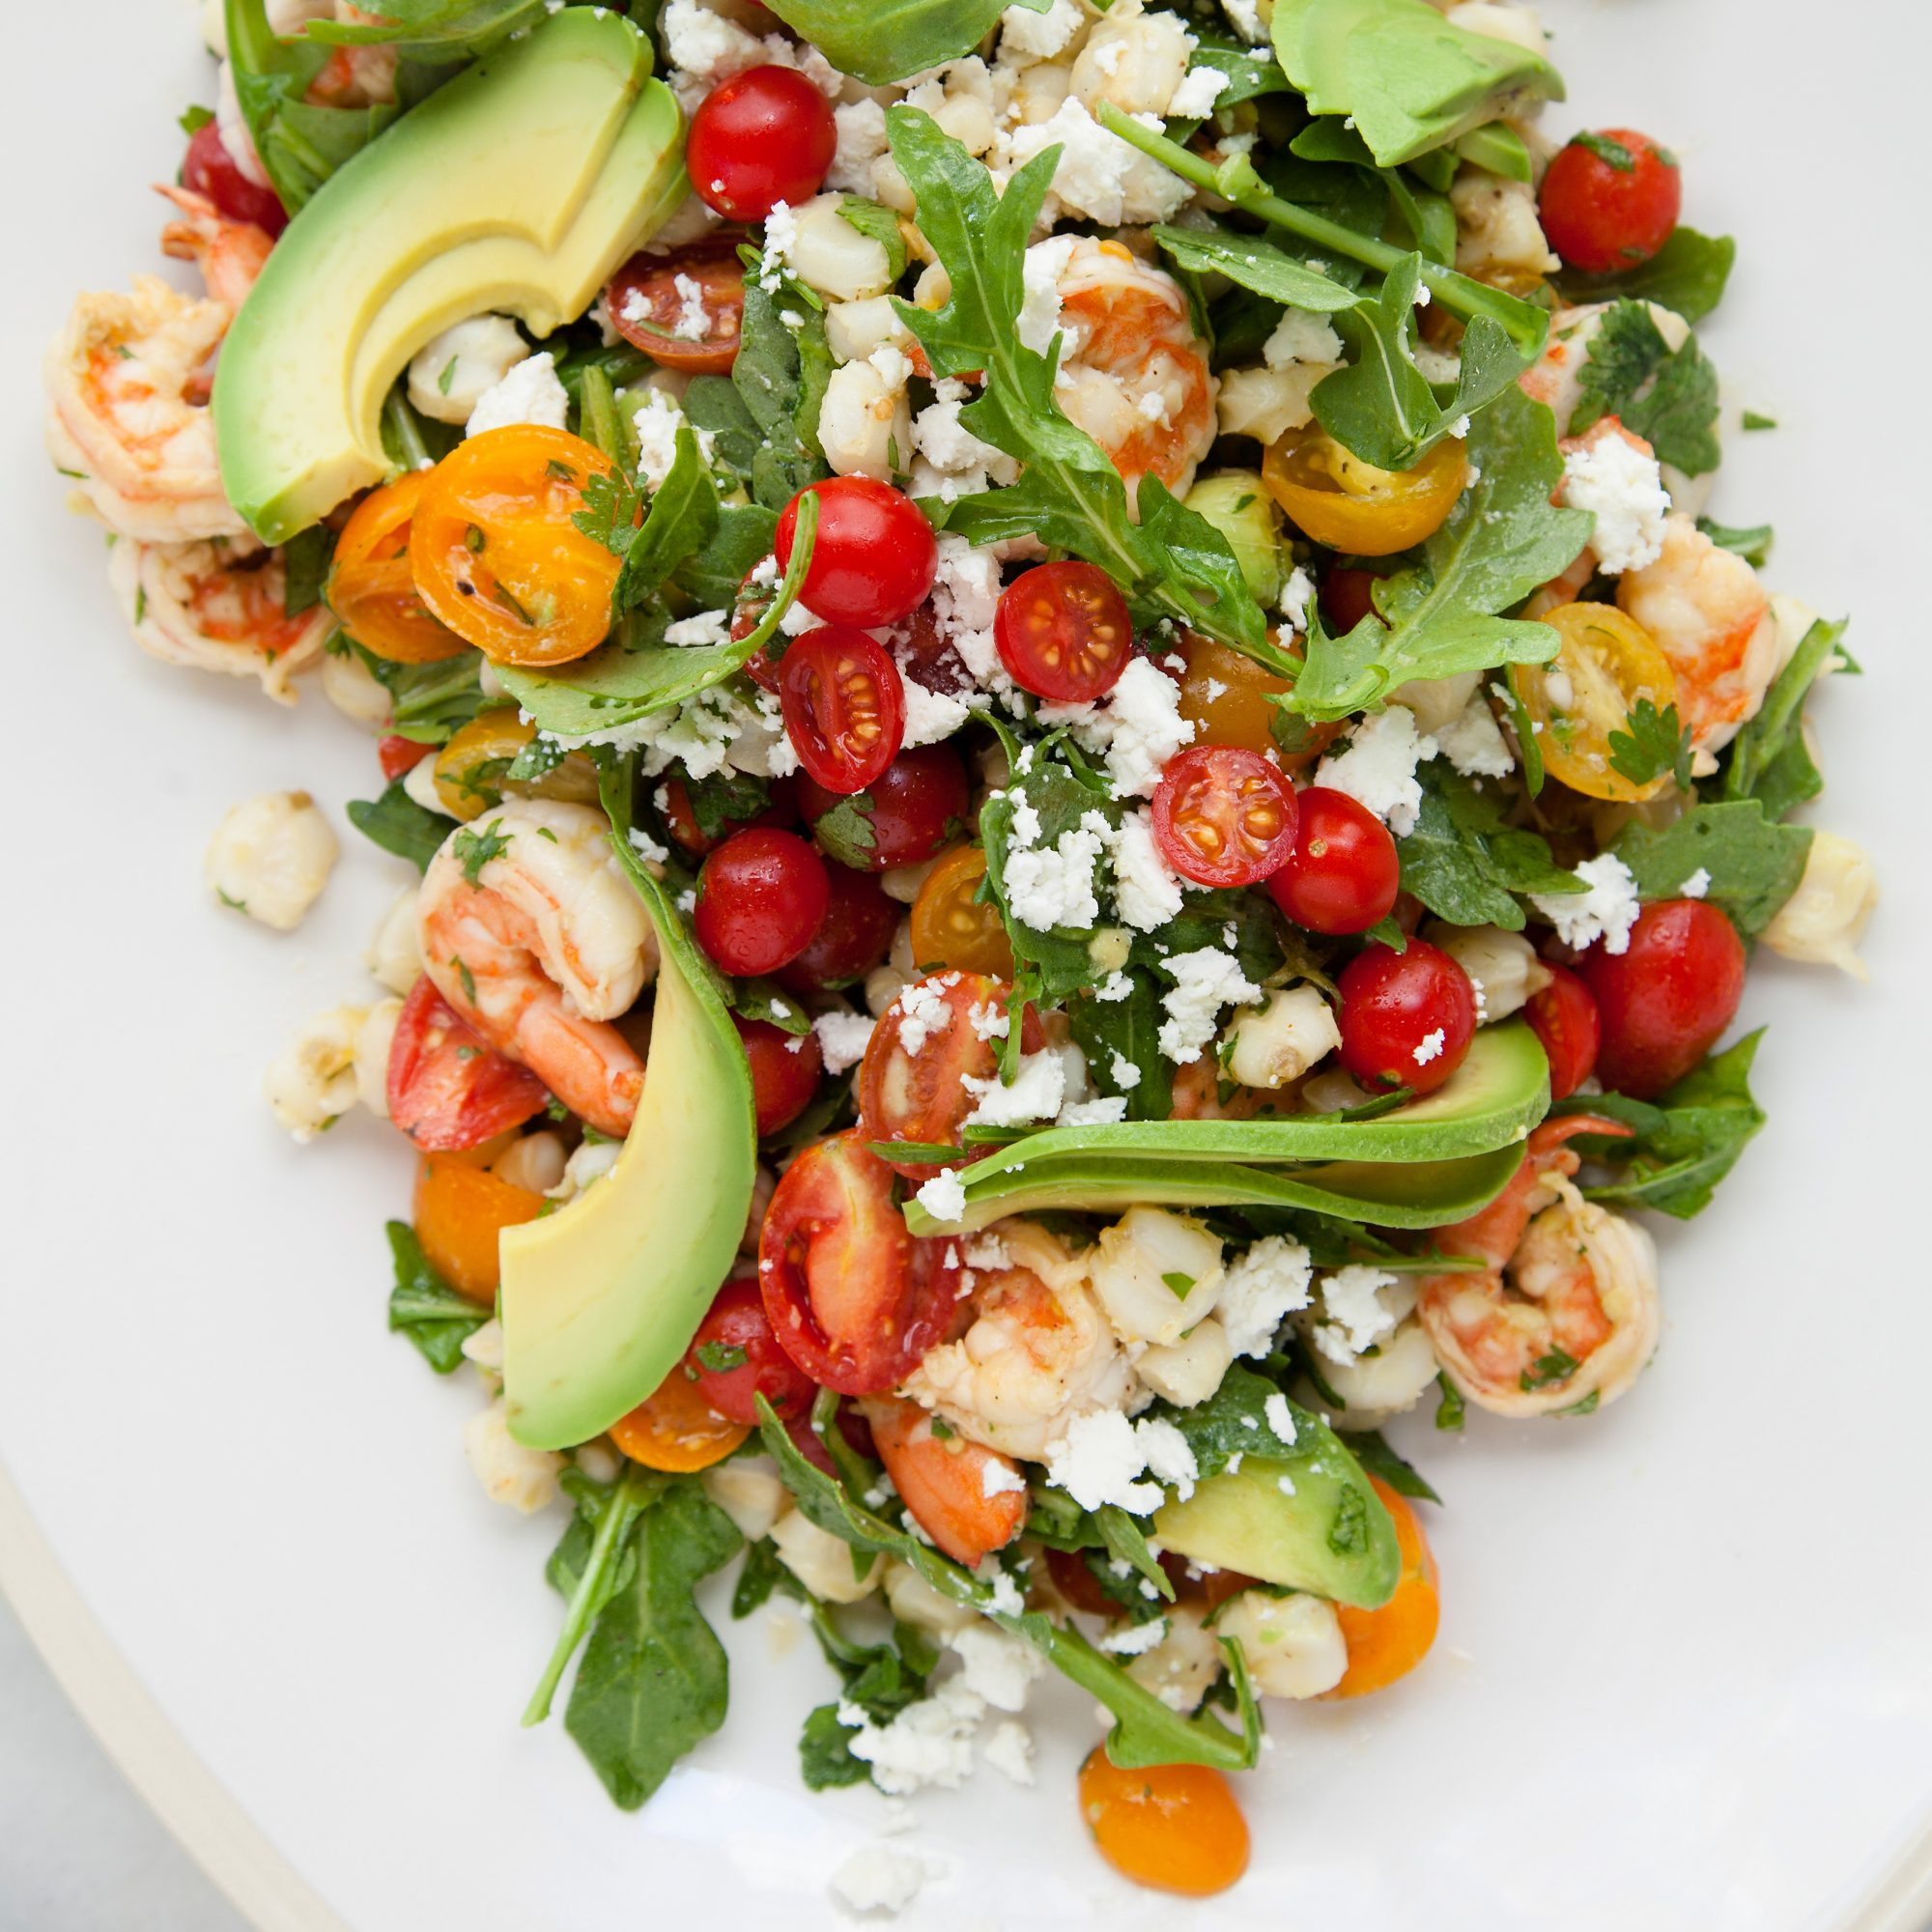 Shrimp Salad with Hominy, Arugula and Lime